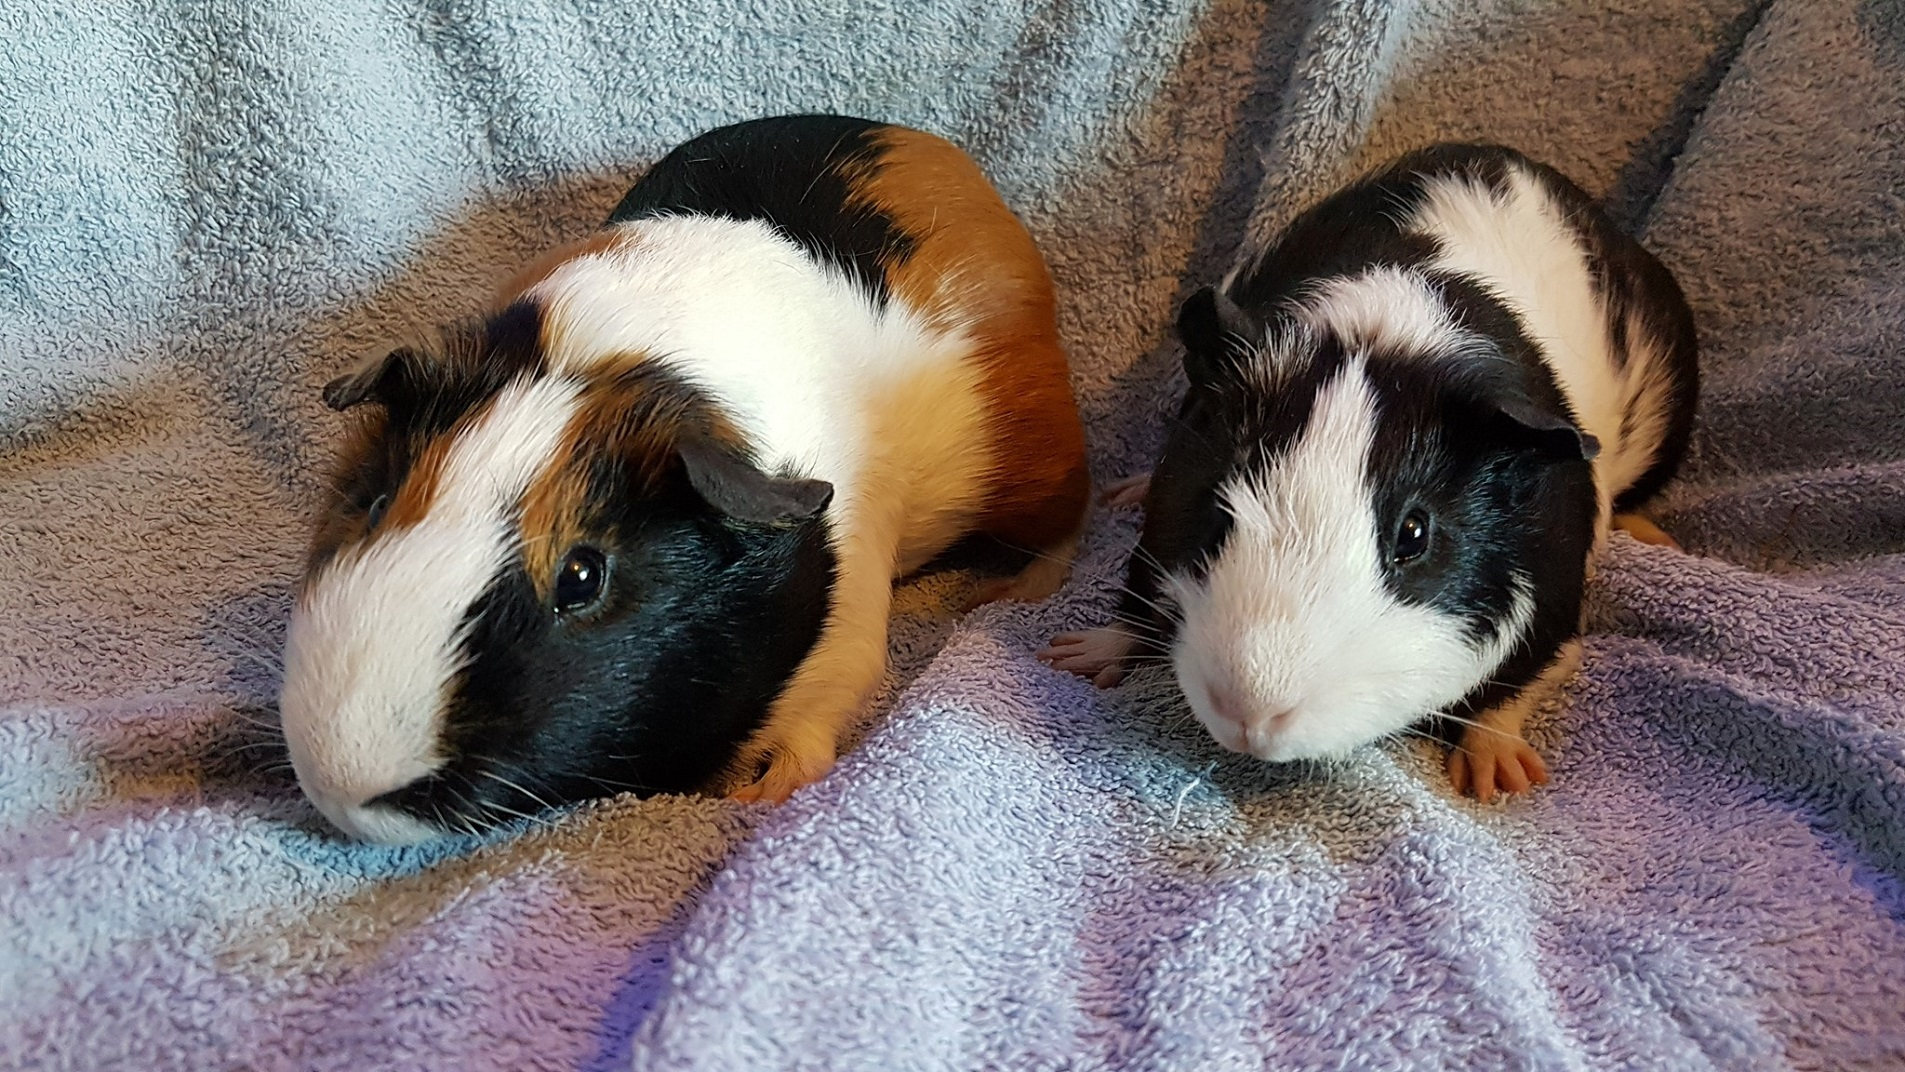 Harry & Sirius (were Spot & Oreo) June 19th 2019